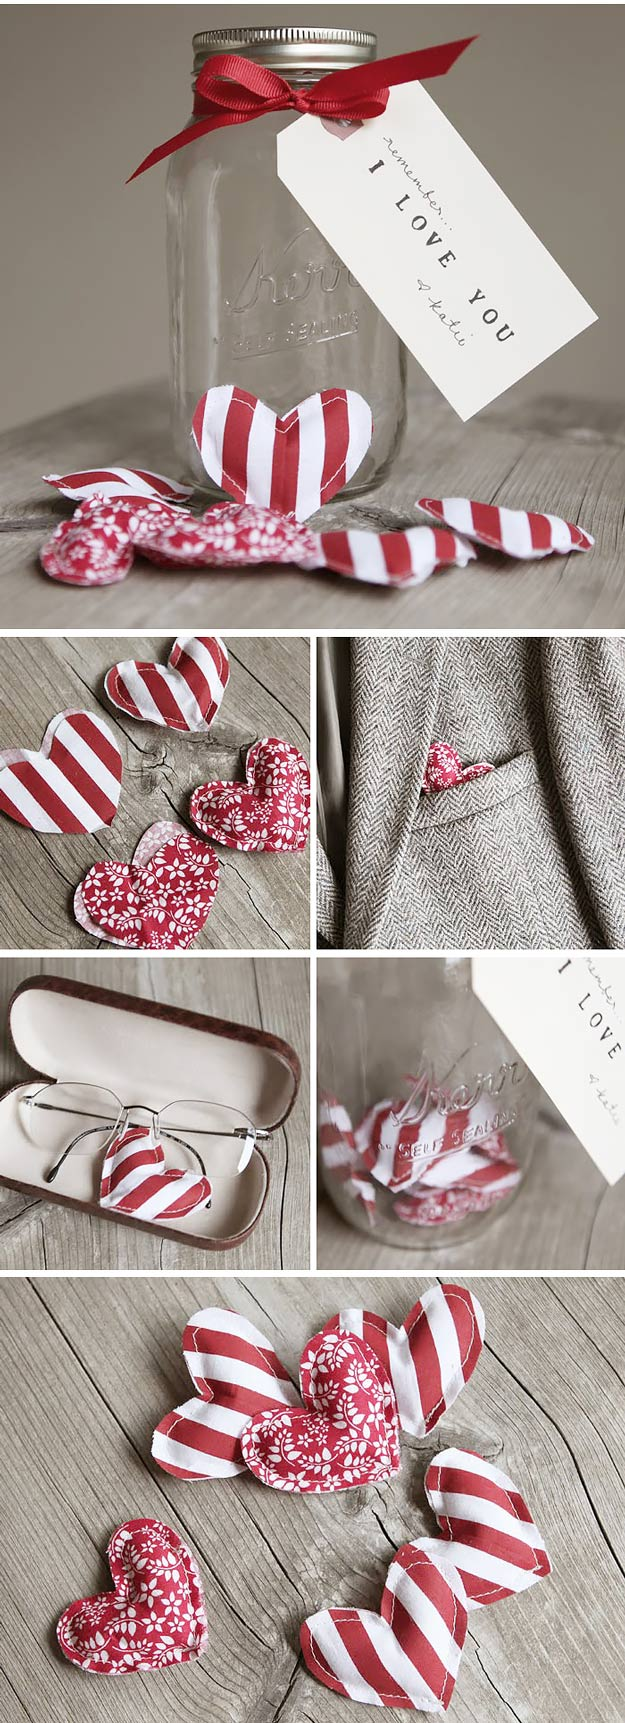 Mason Jar Valentine Gifts and Crafts | DIY Ideas for Valentines Day for Cute Gift Giving and Decor | Fabric Hearts in Mason Jar | #valentines